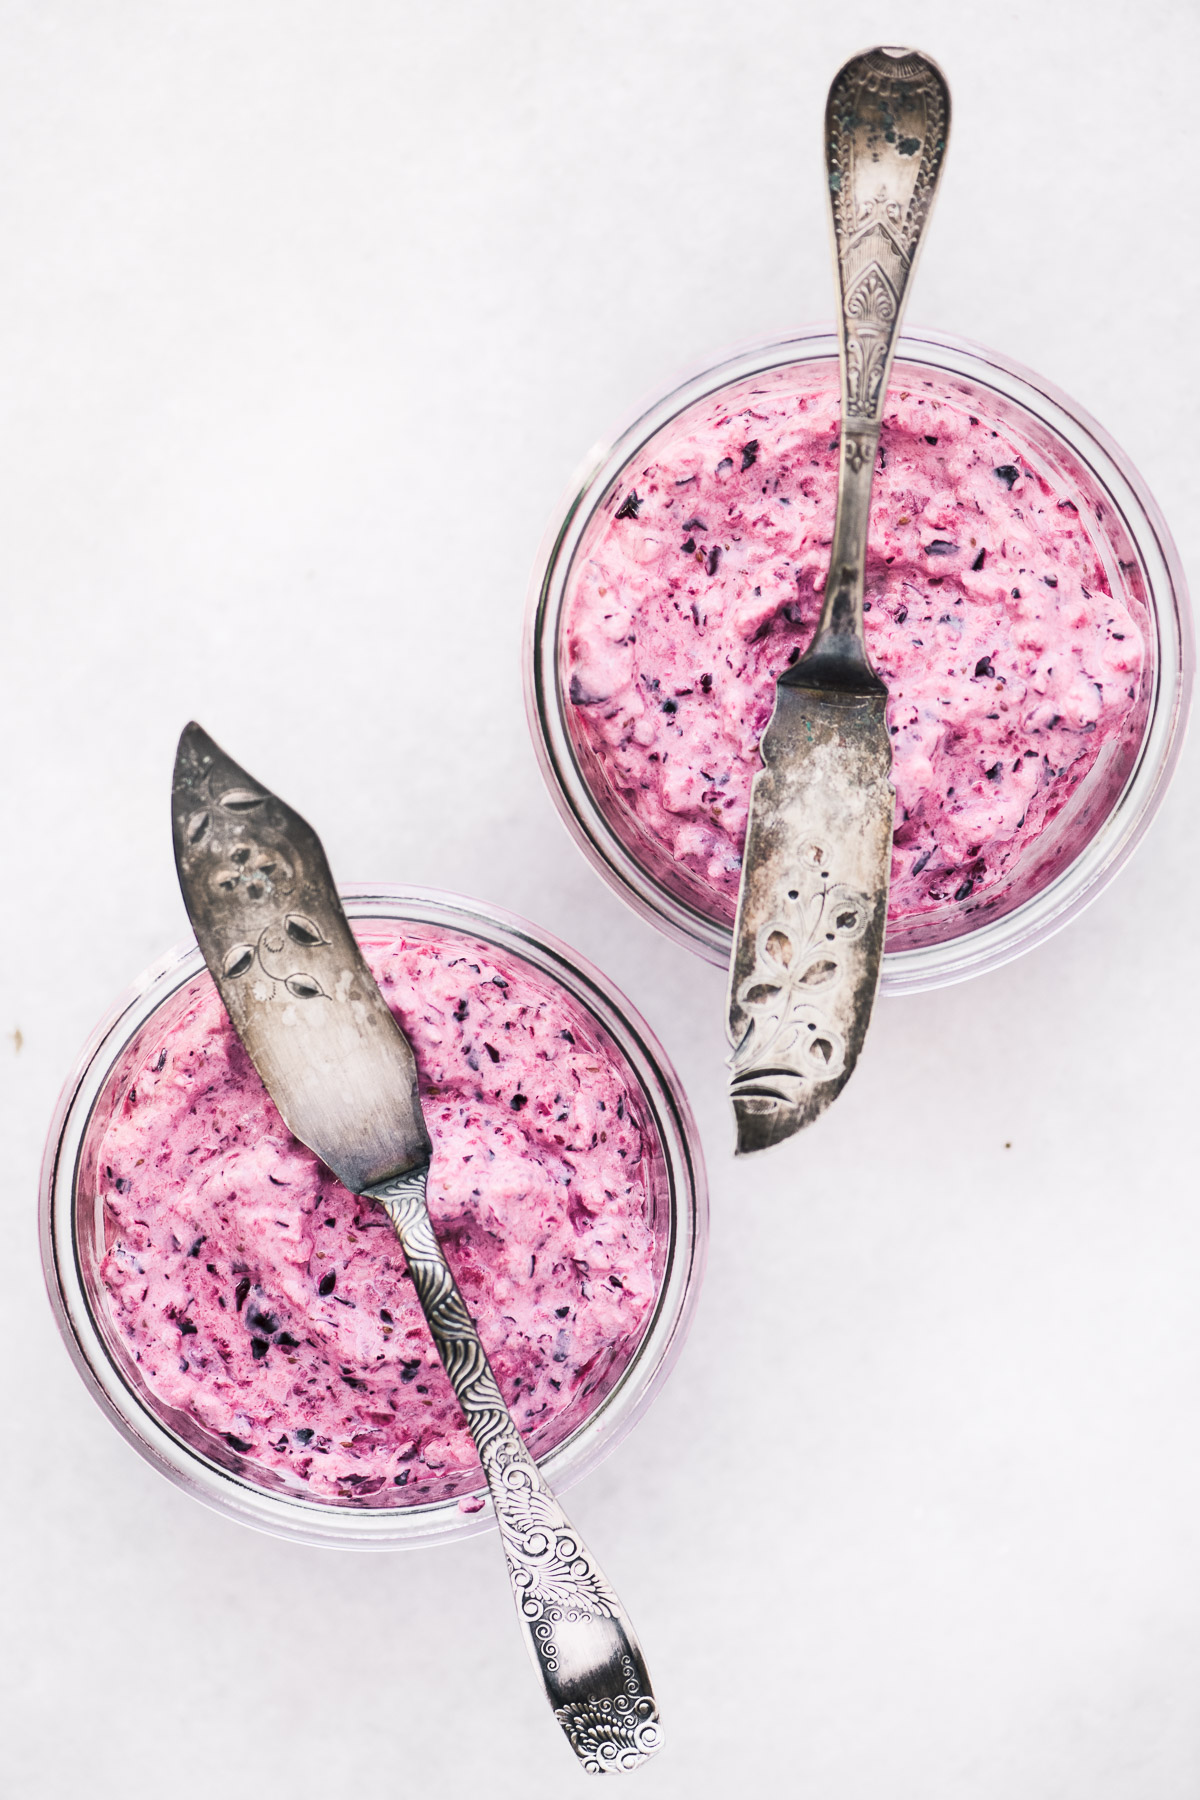 easy cranberry horseradish relish in small glass jars